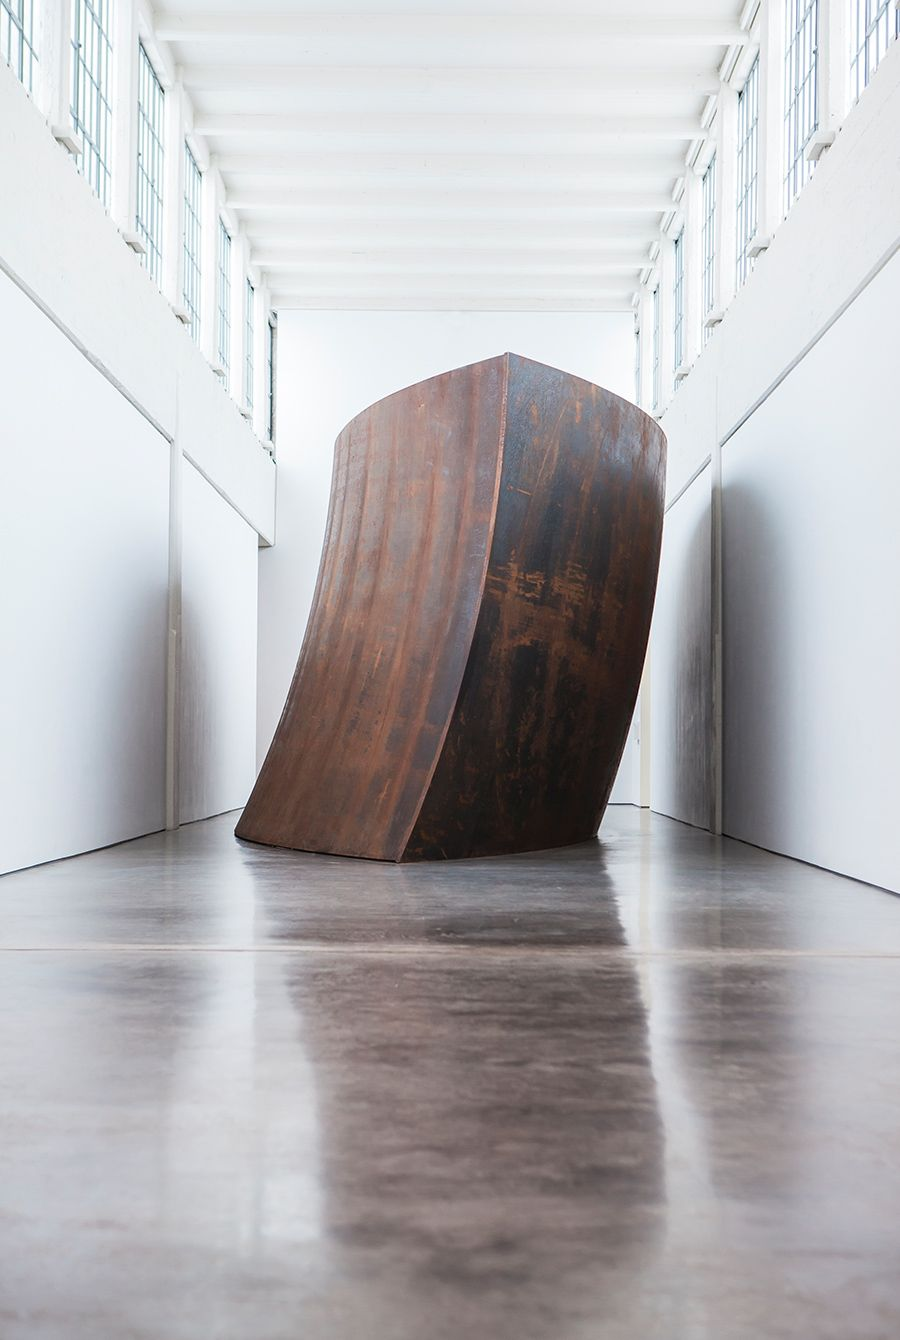 One of the many sculptures by Richard Serra inside the Dia:Beacon.